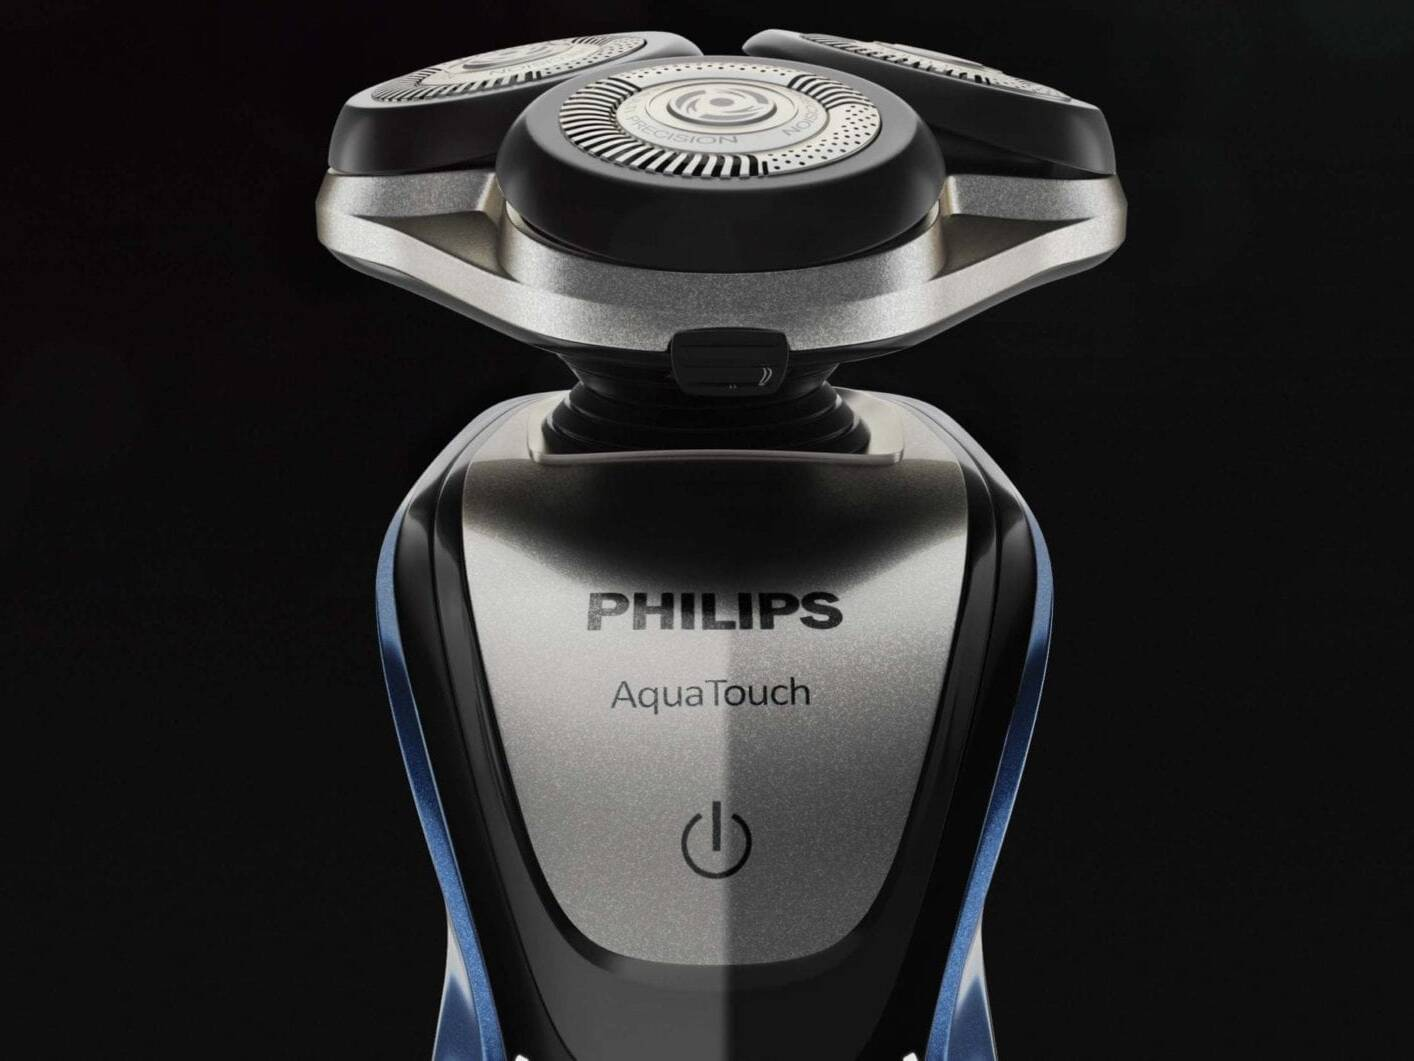 Philips Shaver 3D Visualization 01